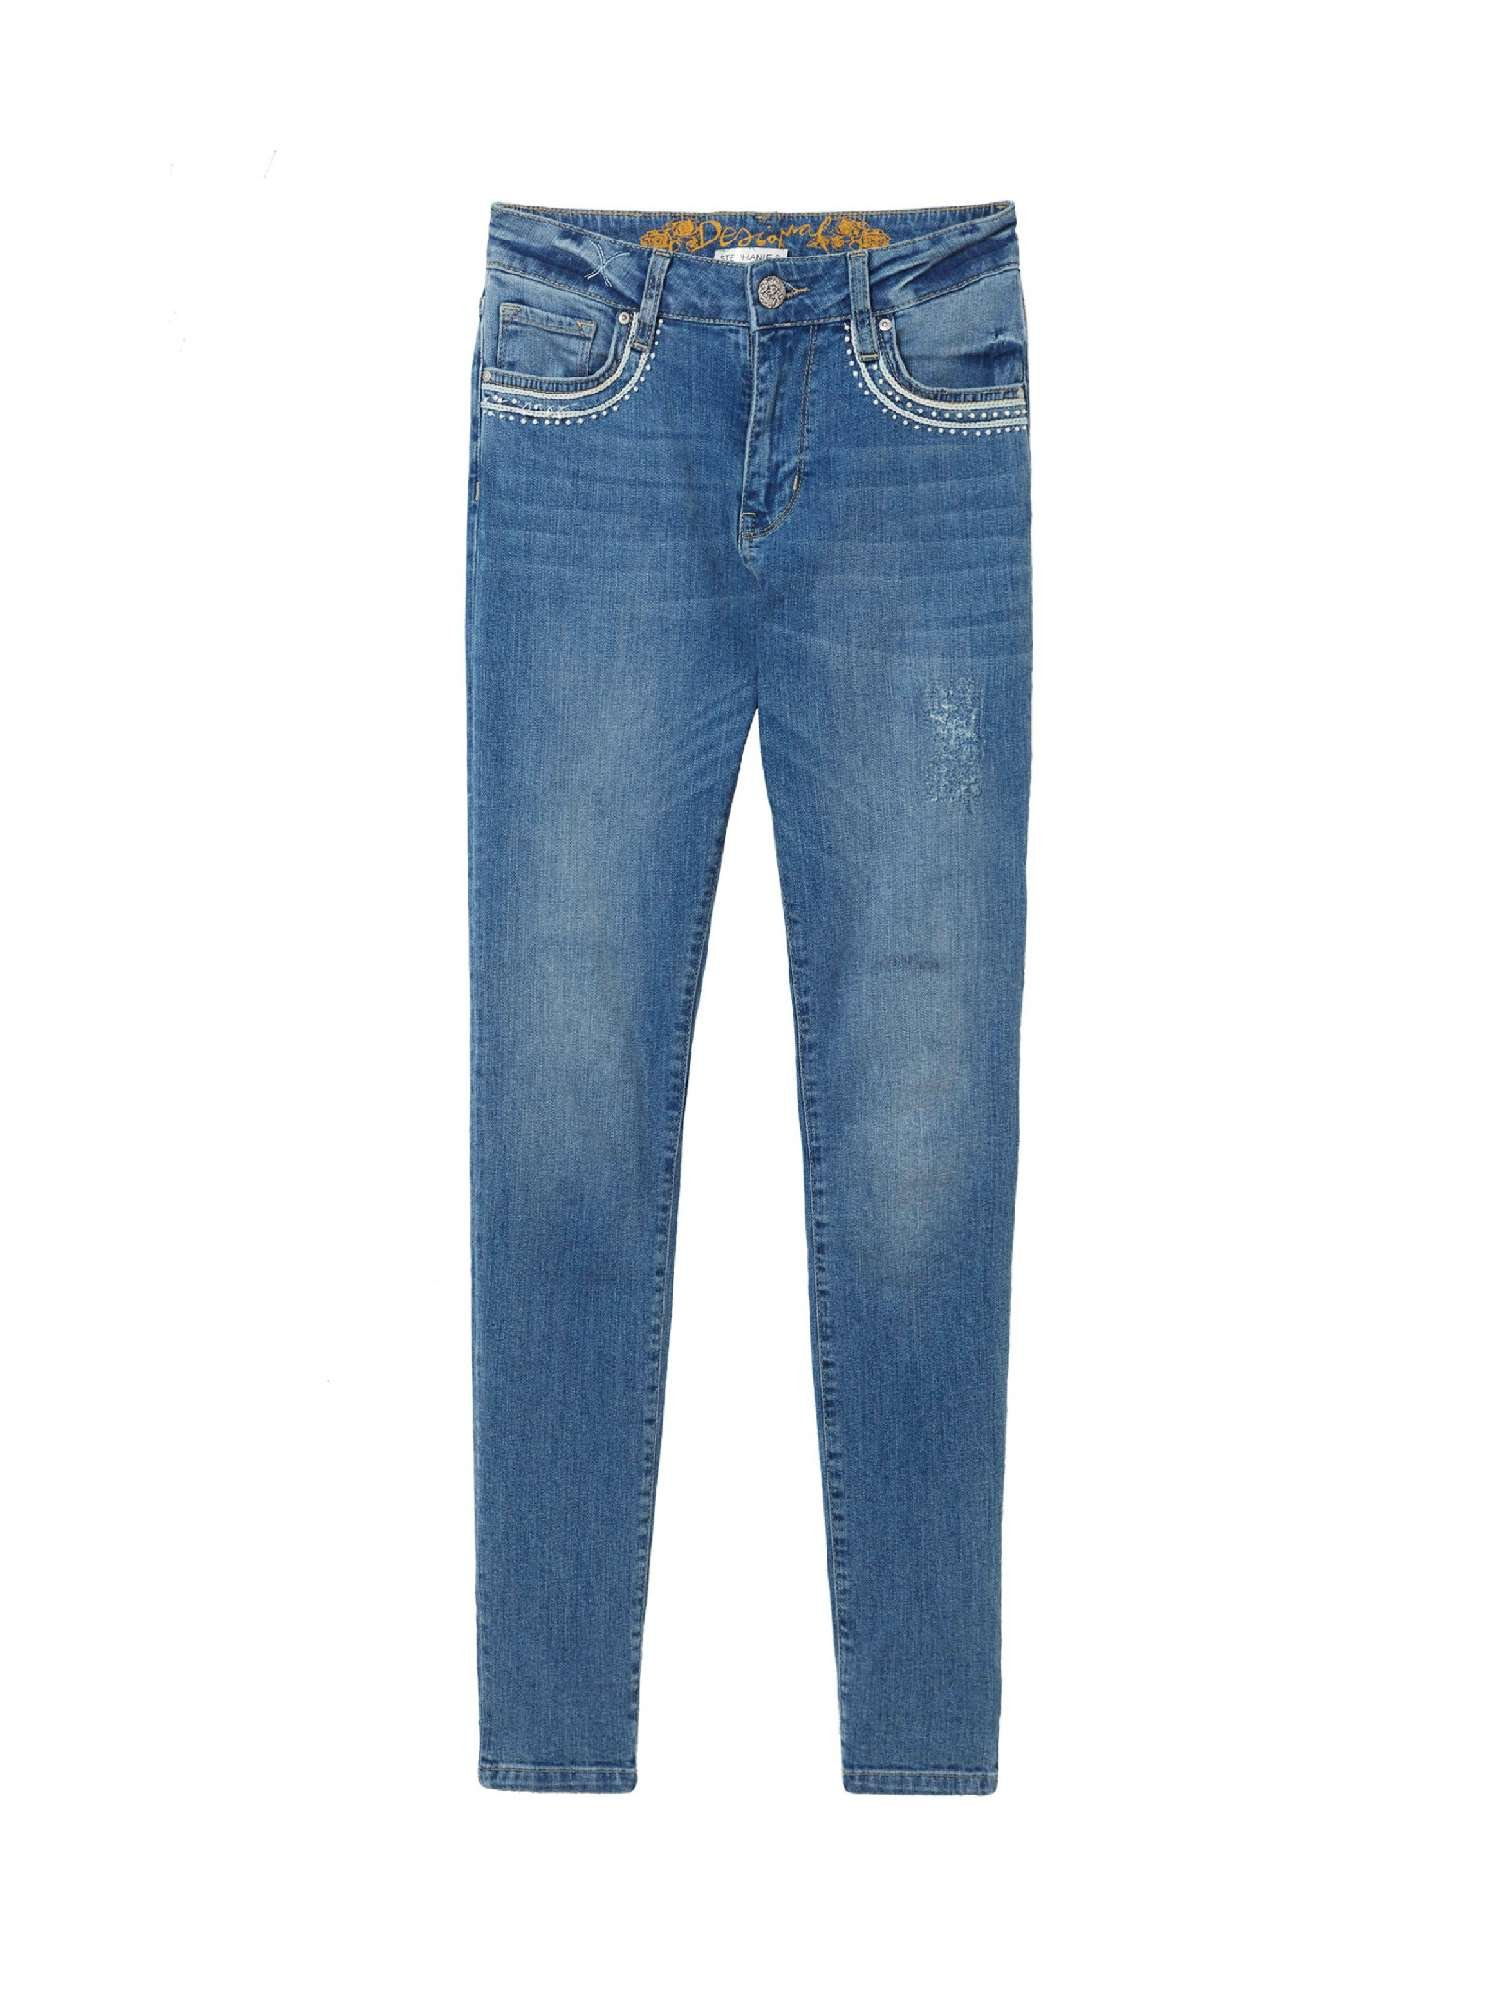 Desigual 18SWDD19 Jeans Mujeres